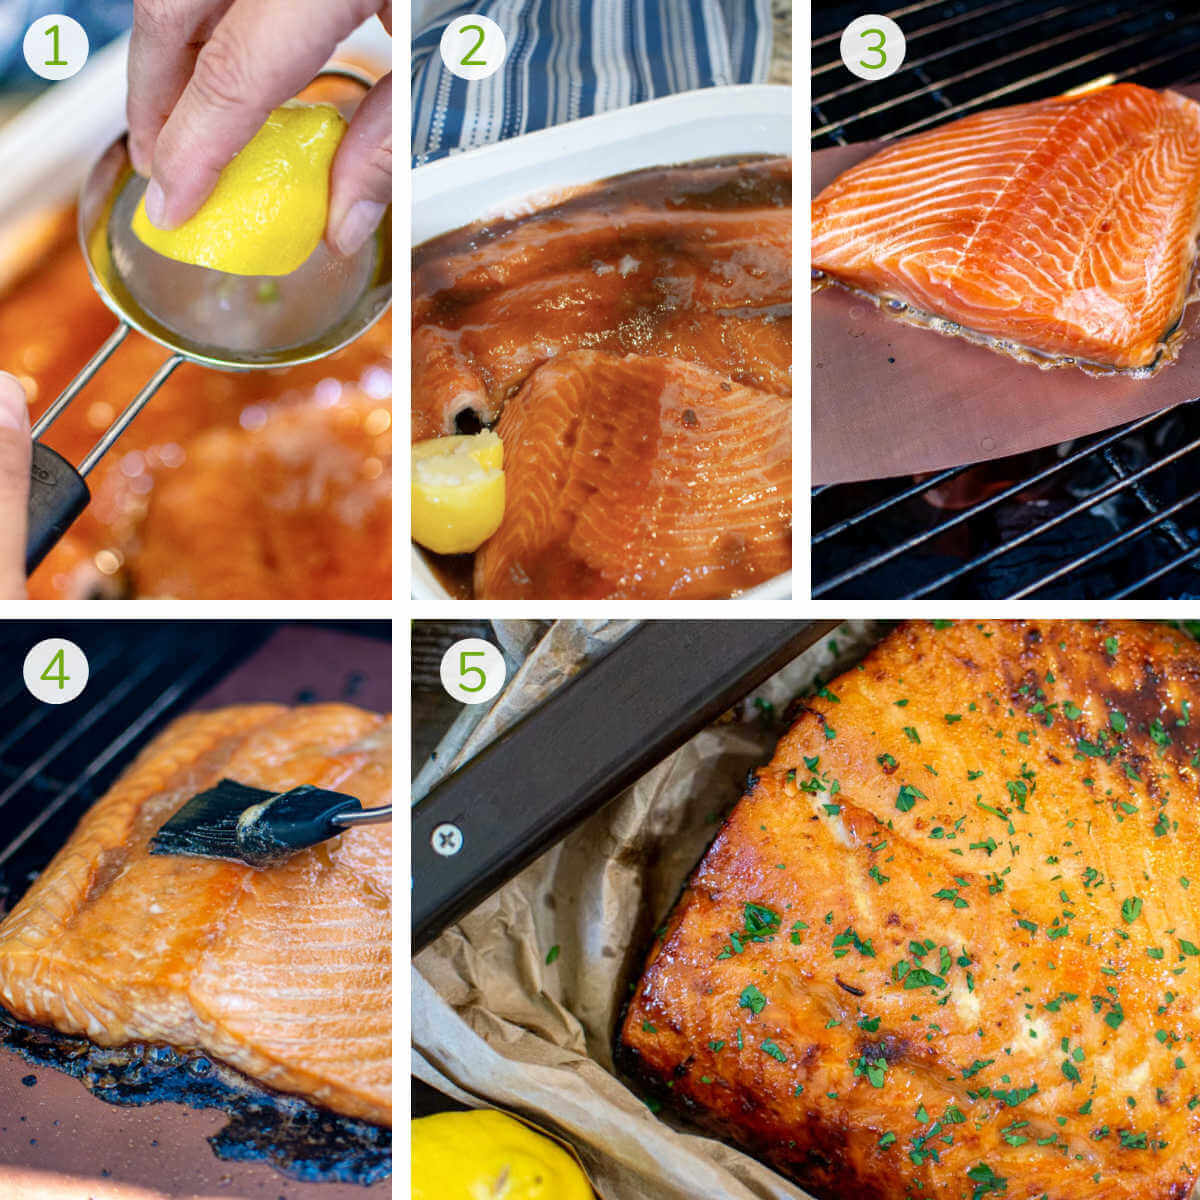 several process photos showing squeezing a lemon marinating the salmon with brown sugar and grilling on a copper mat.